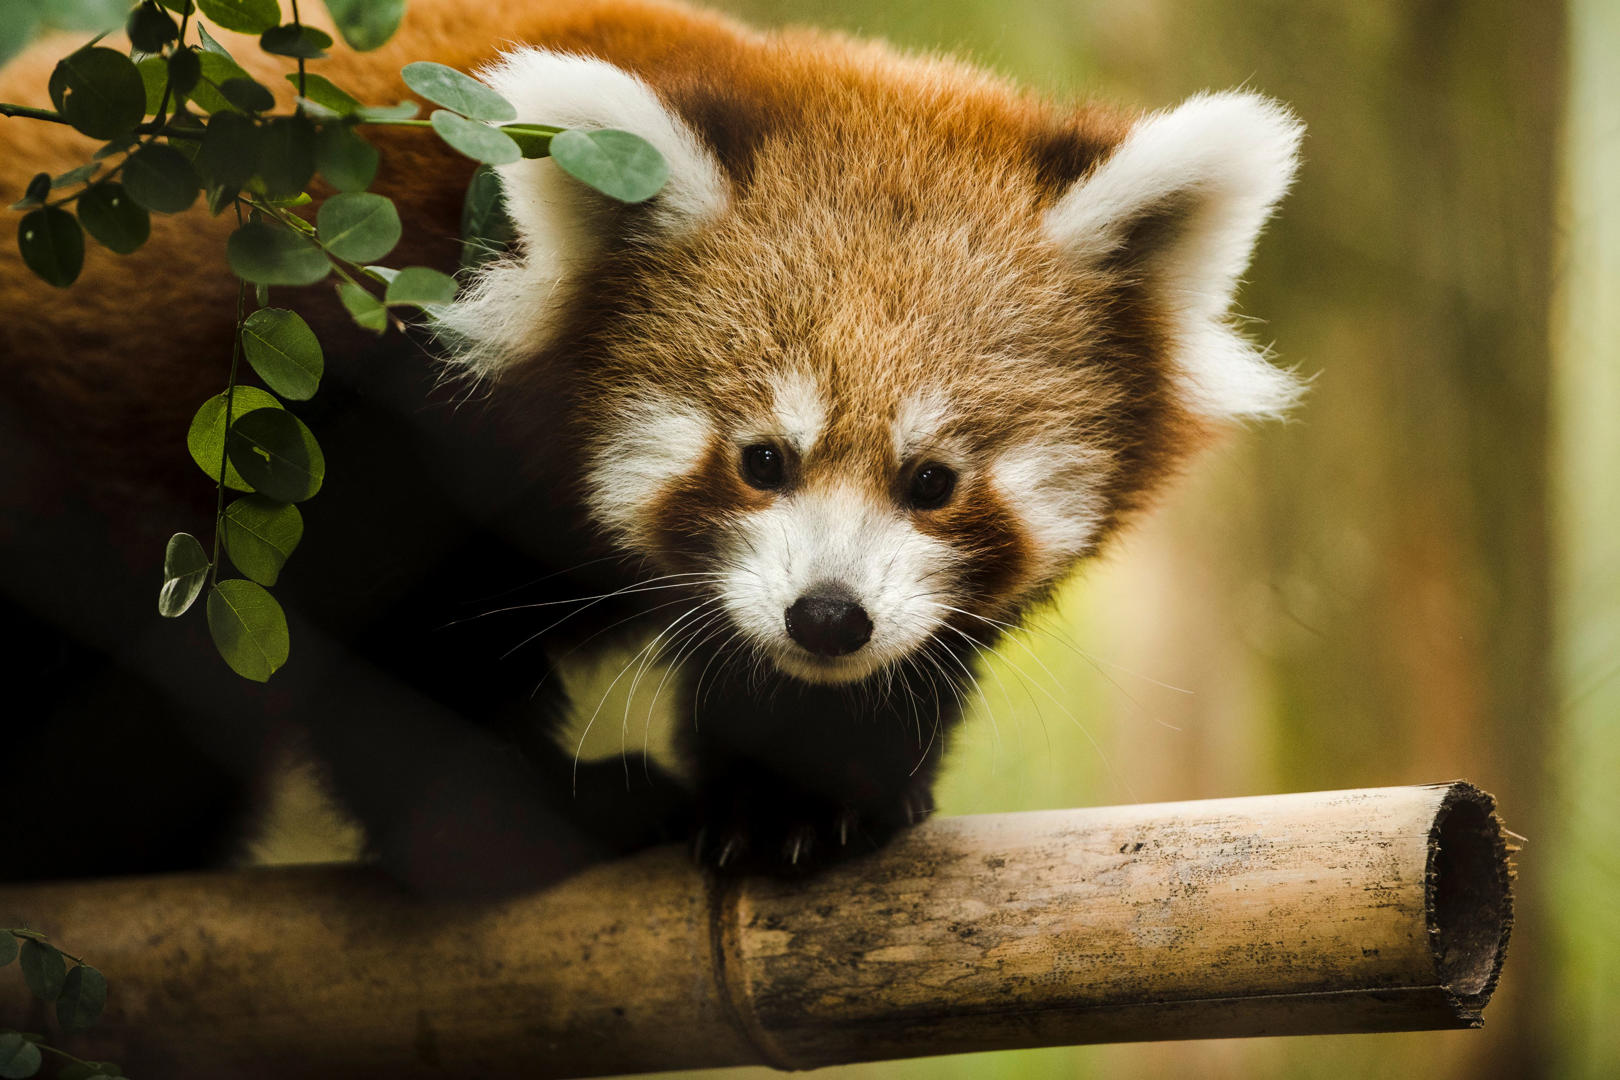 Слайд 1 из 69: One of two young red panda cubs born at the Philadelphia Zoo makes its debut, in Philadelphia, Thursday, Oct. 26, 2017. Red pandas are considered endangered in the wild and are native to the mountains of central China, Nepal and northern Myanmar. (AP Photo/Matt Rourke)